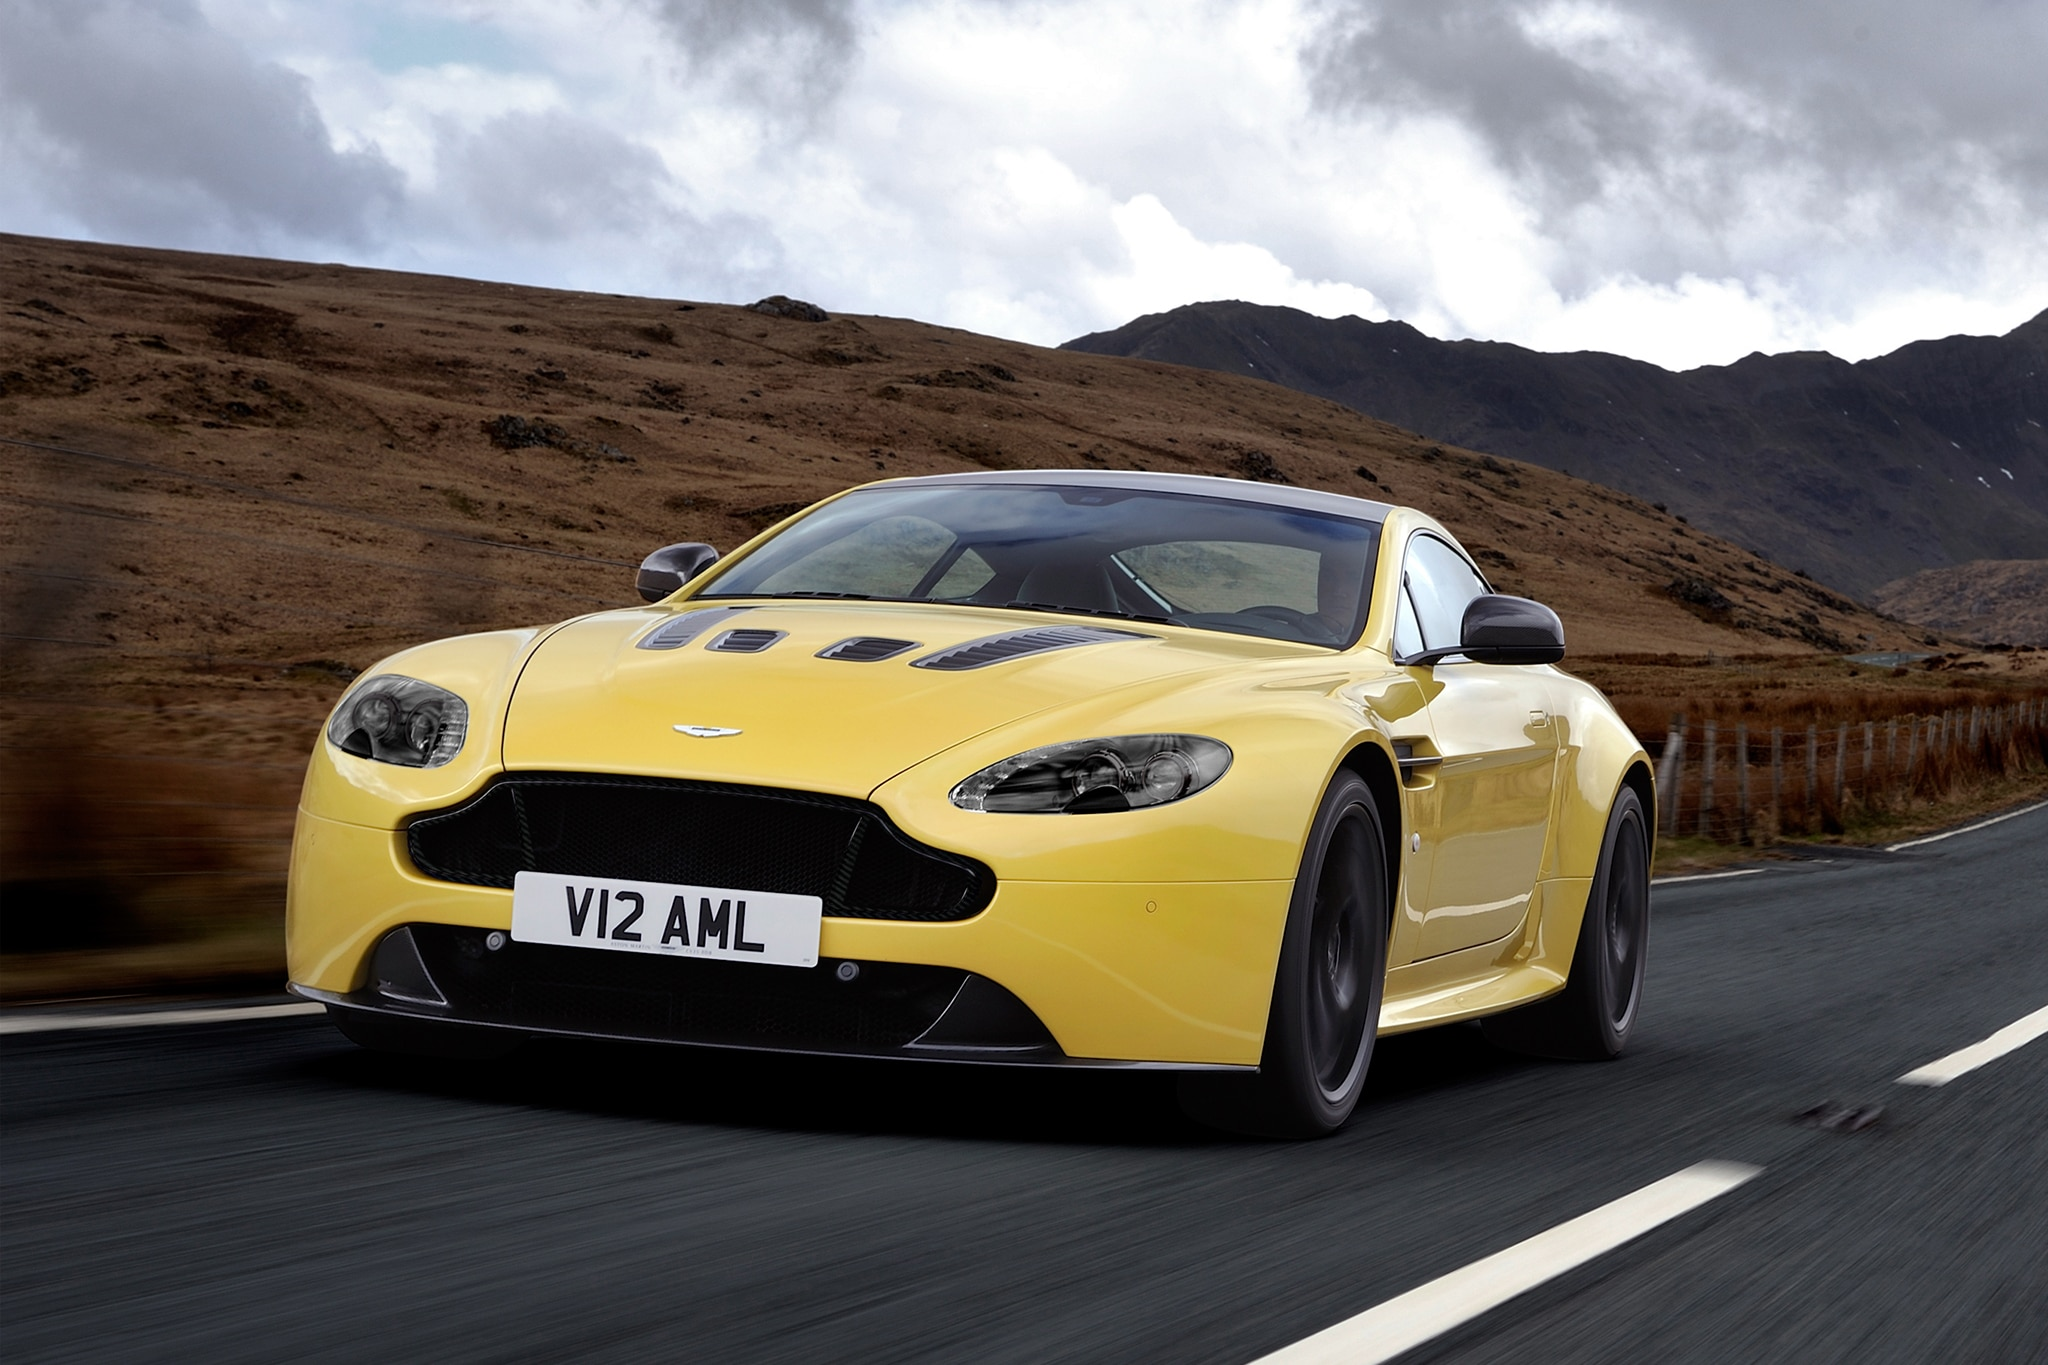 2014 Aston Martin V12 Vantage S Three Quarters View 11